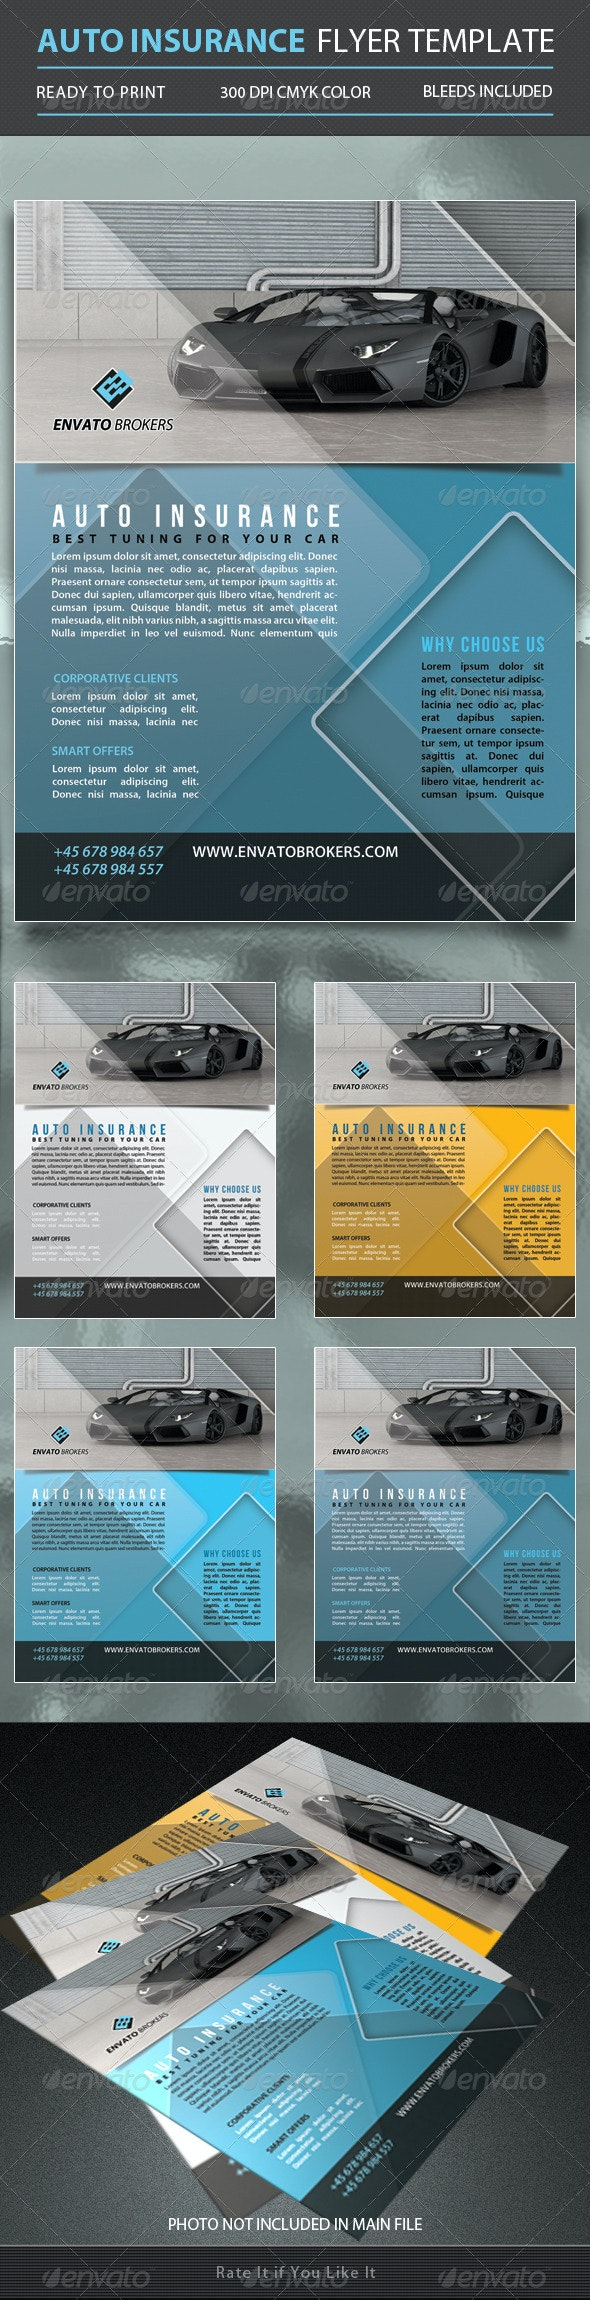 Auto Insurance Flyer Template - Corporate Flyers